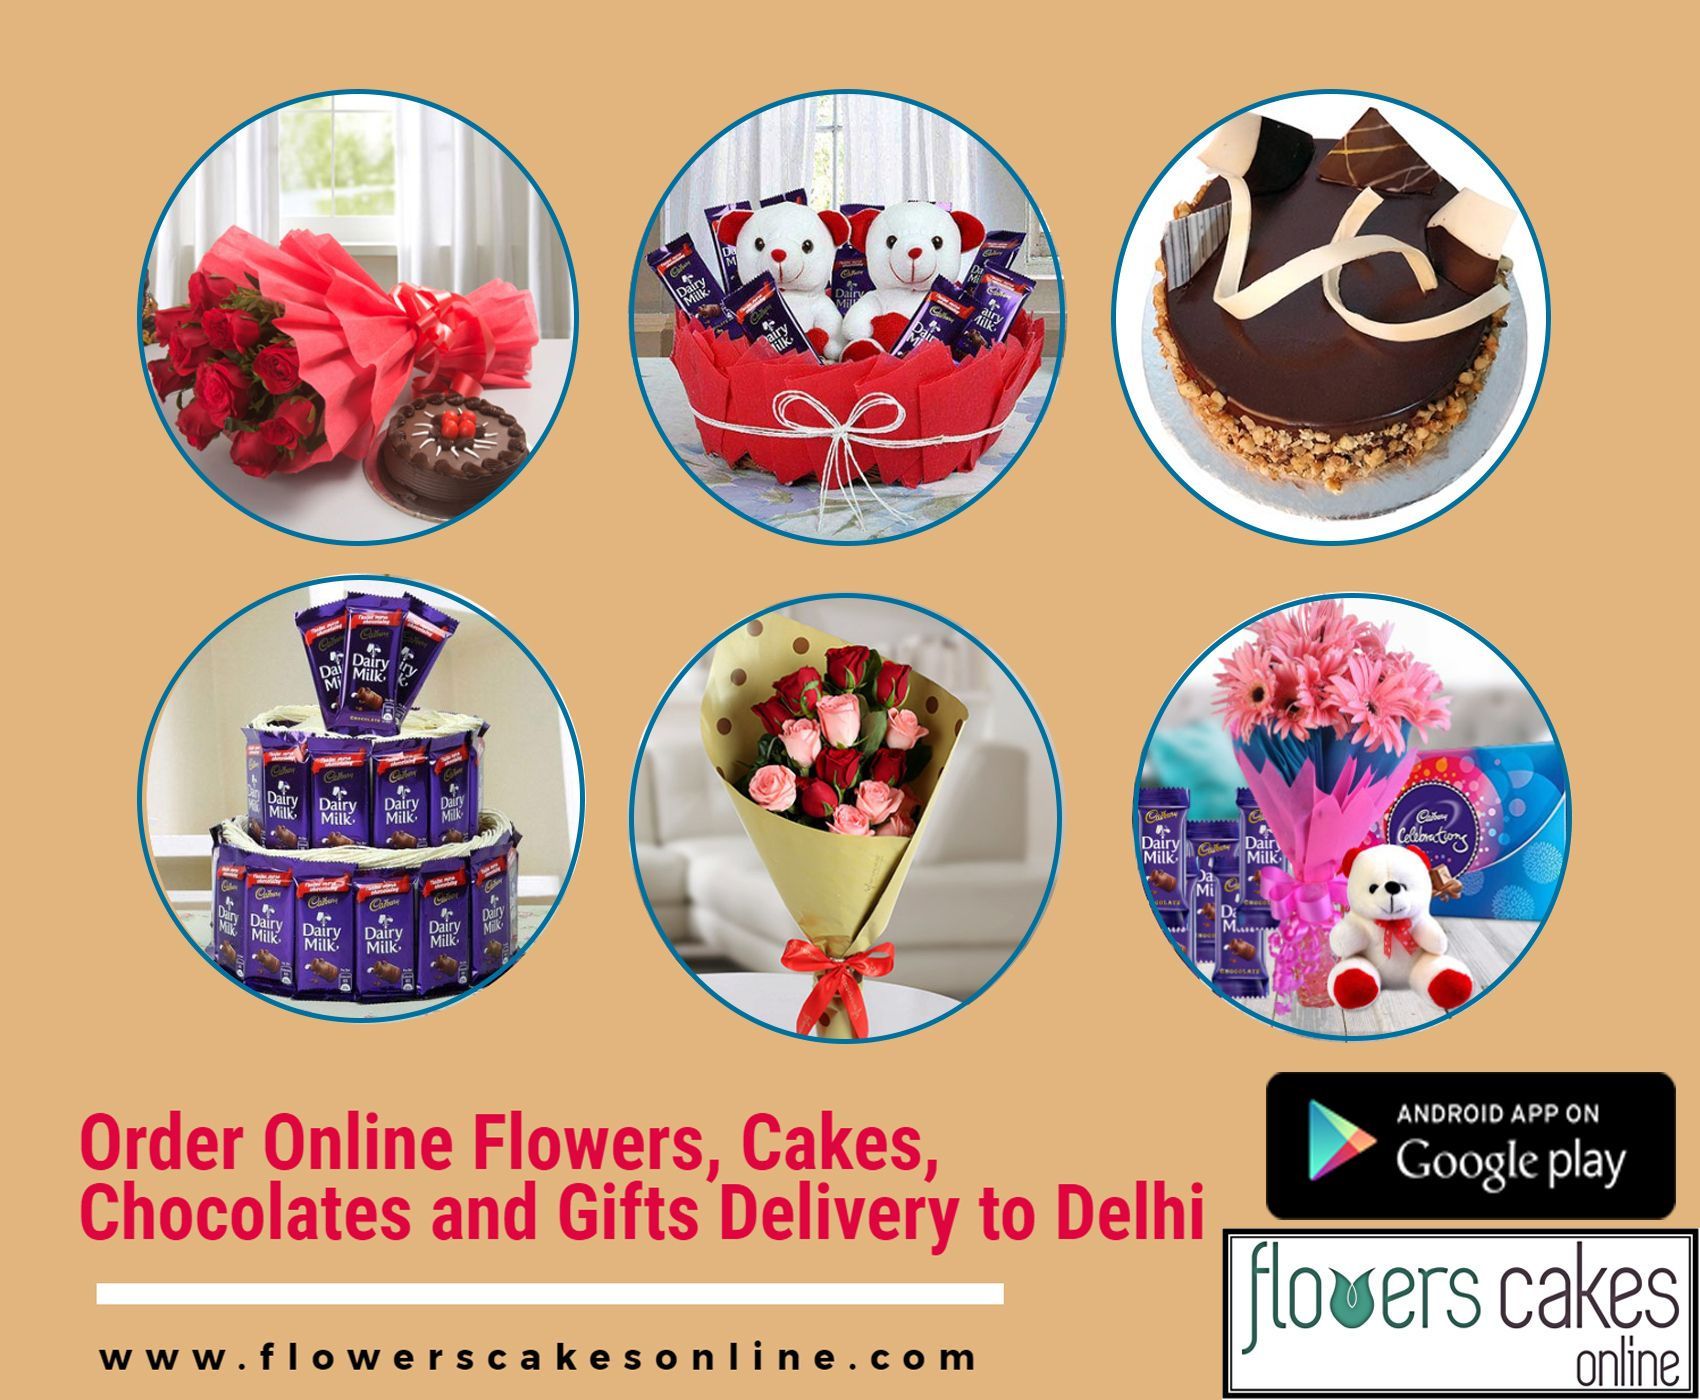 Online flowers and cake delivery in Delhi is just one